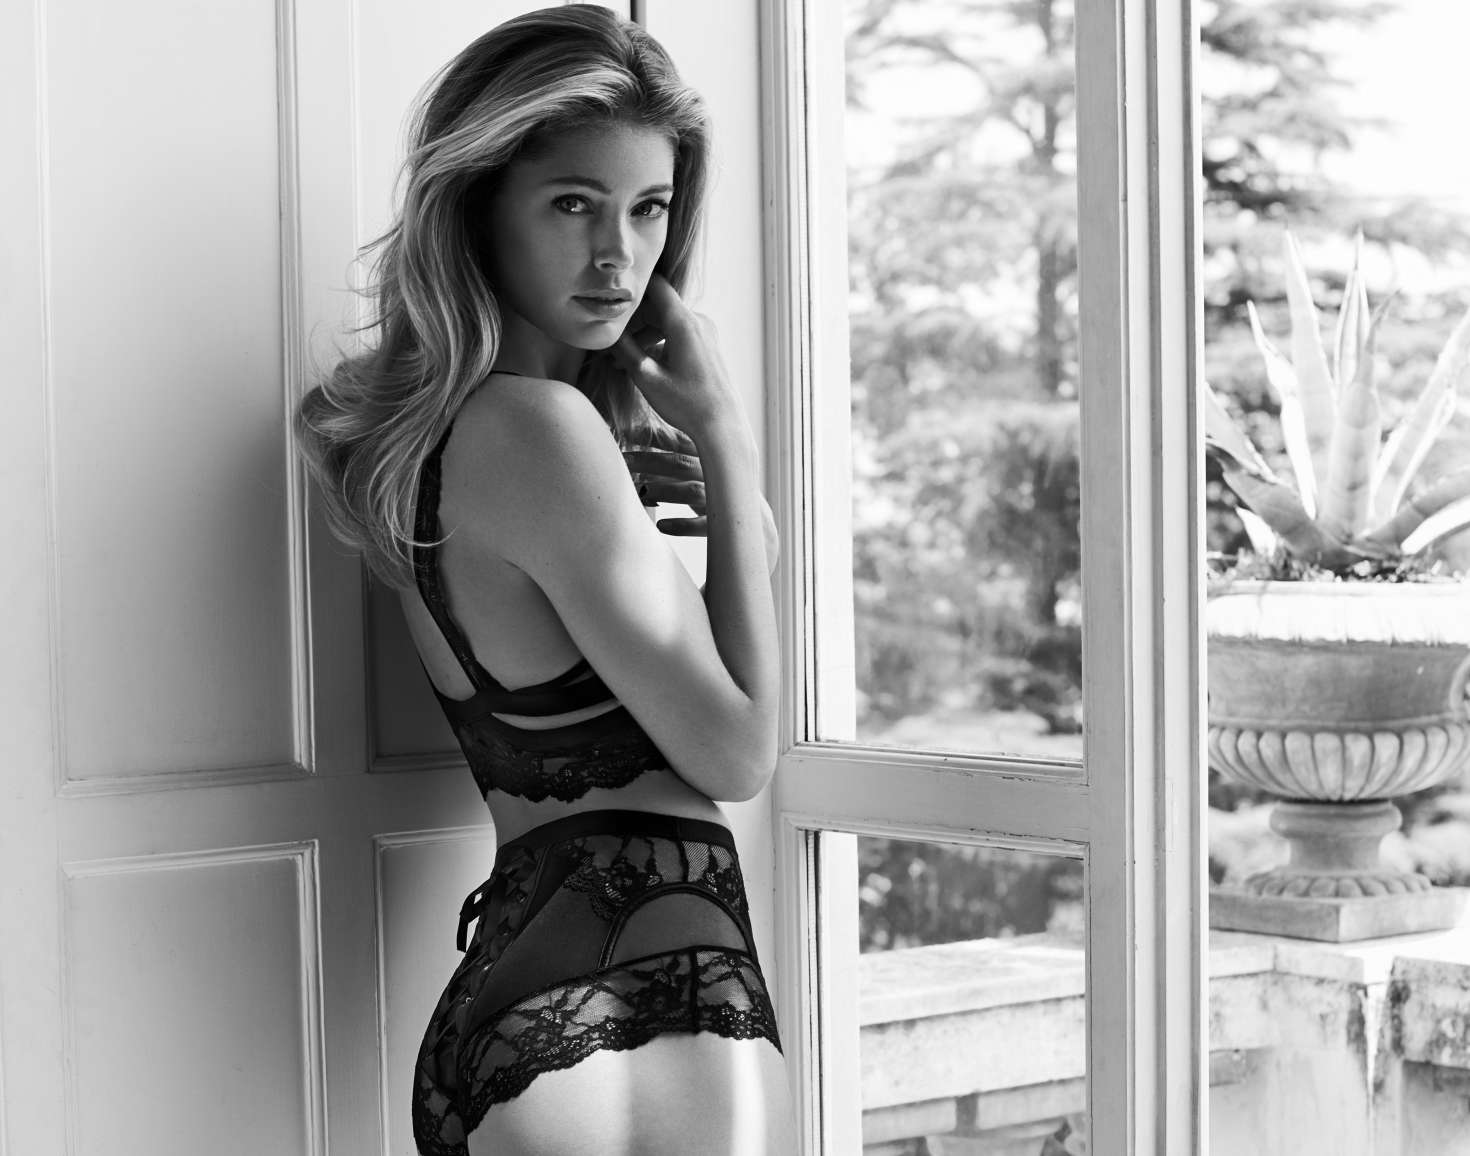 Doutzen Kroes – Hunkemoller Photoshoot 2016   Doutzen-Kroes:-Hunkemoller-Photoshoot-2016--27